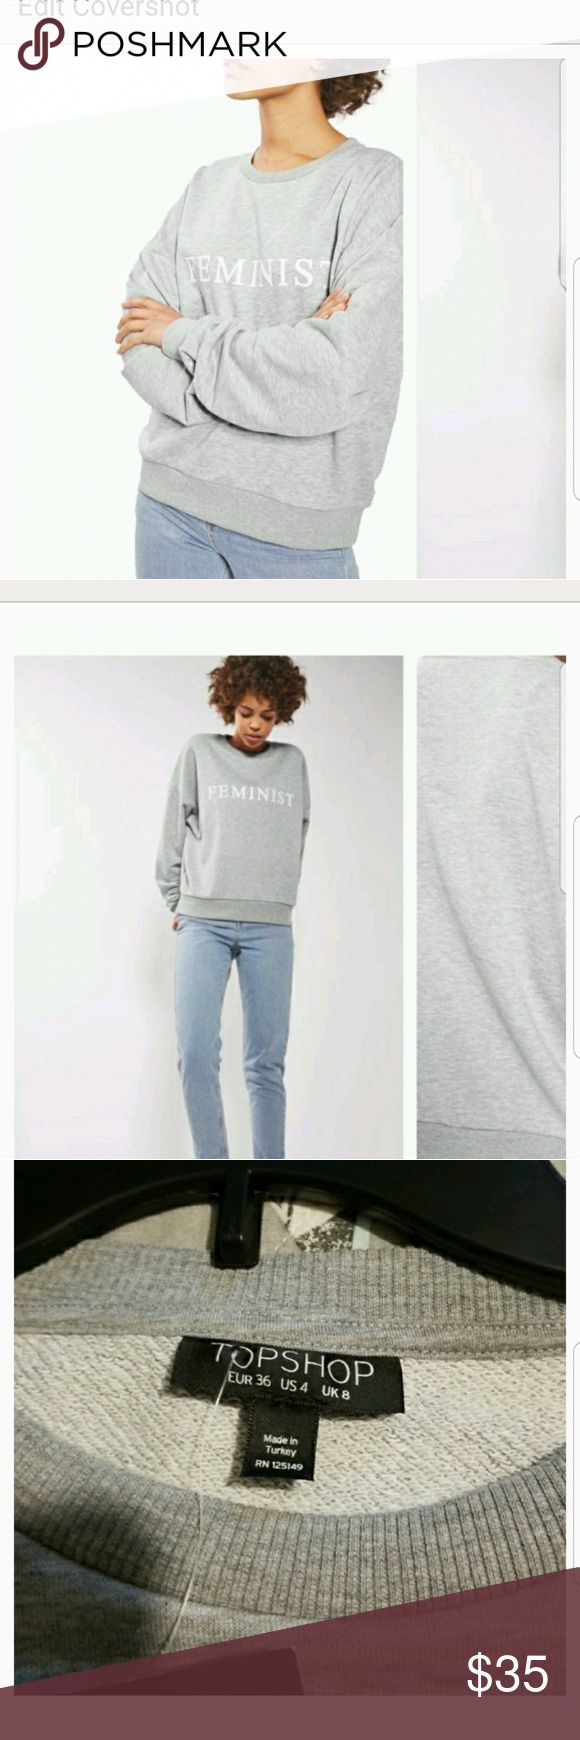 Top shop feminist sweatshirt oversized!! This is an oversized fit!! More like a large....brand new with tags....purchased from nordstroms last season and was sold out very quickly...color is gray with white lettering..cotton /poly mix....23.5 inches across chest and approx 24 inches long...looks just like the stock photo..its labeled size 4 but fits much bigger!! top shop Tops Sweatshirts & Hoodies